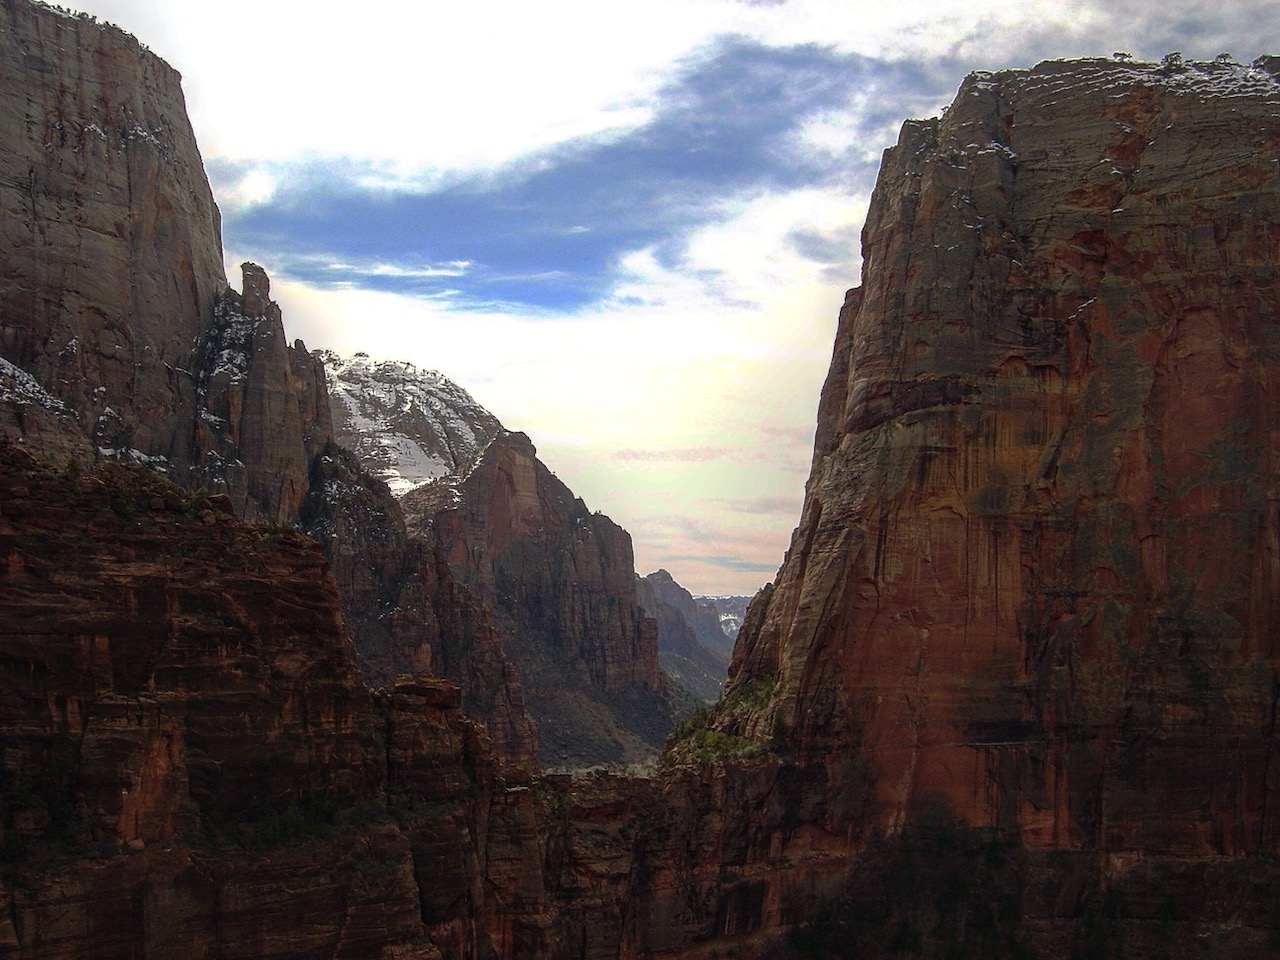 Angel's Landing behind me